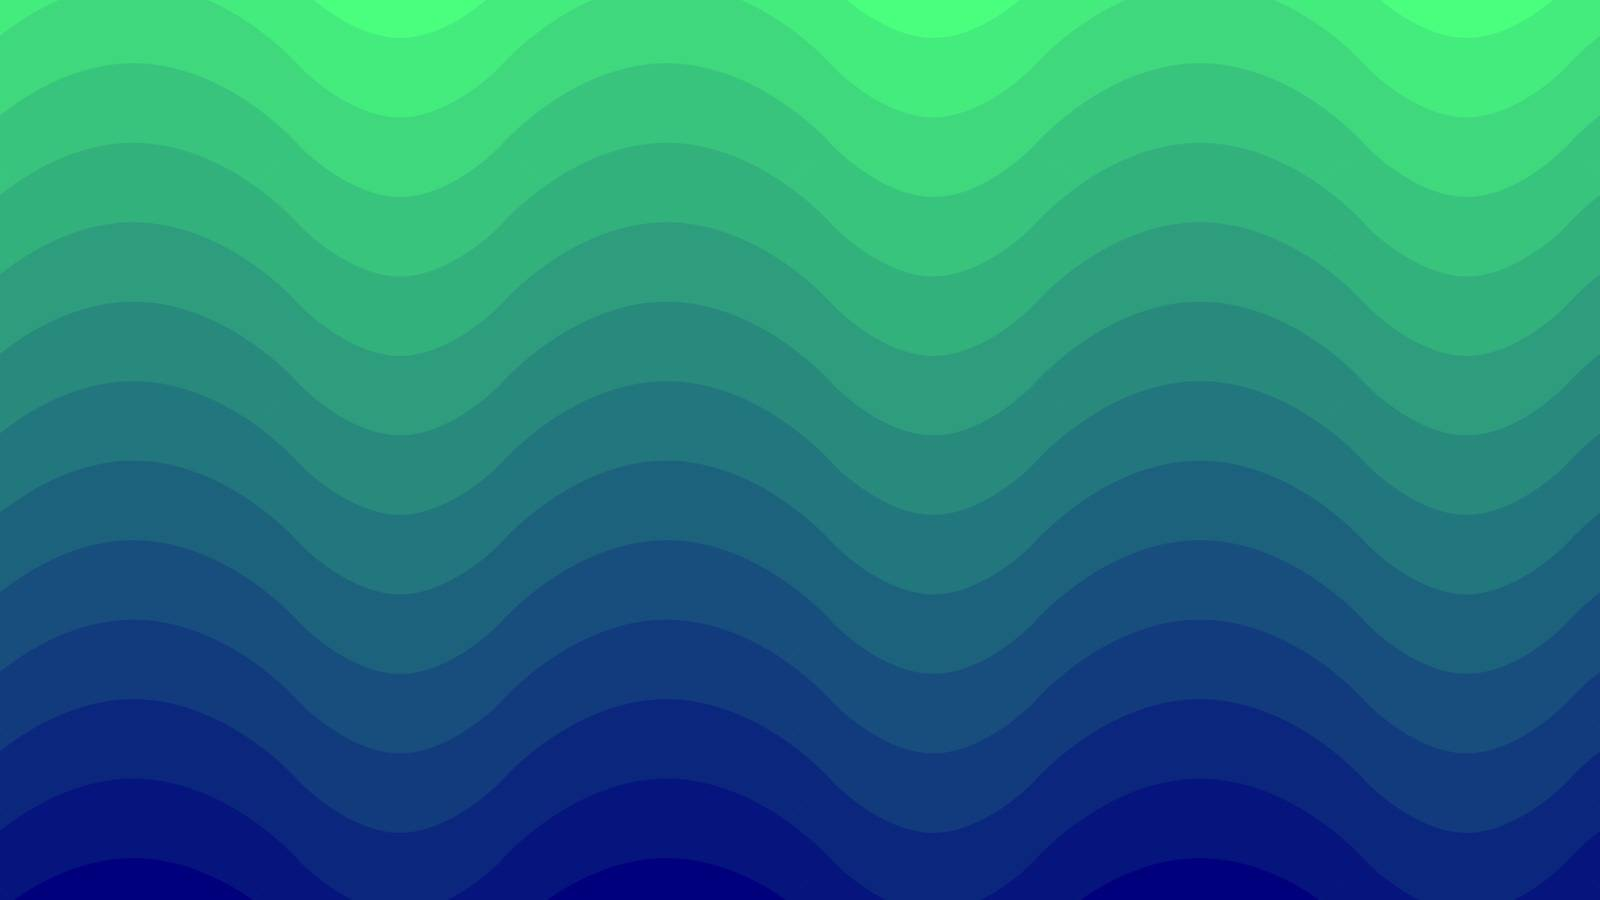 Green and Blue vector texture with waves. Graphic abstract illustration for website, poster, banner ads.